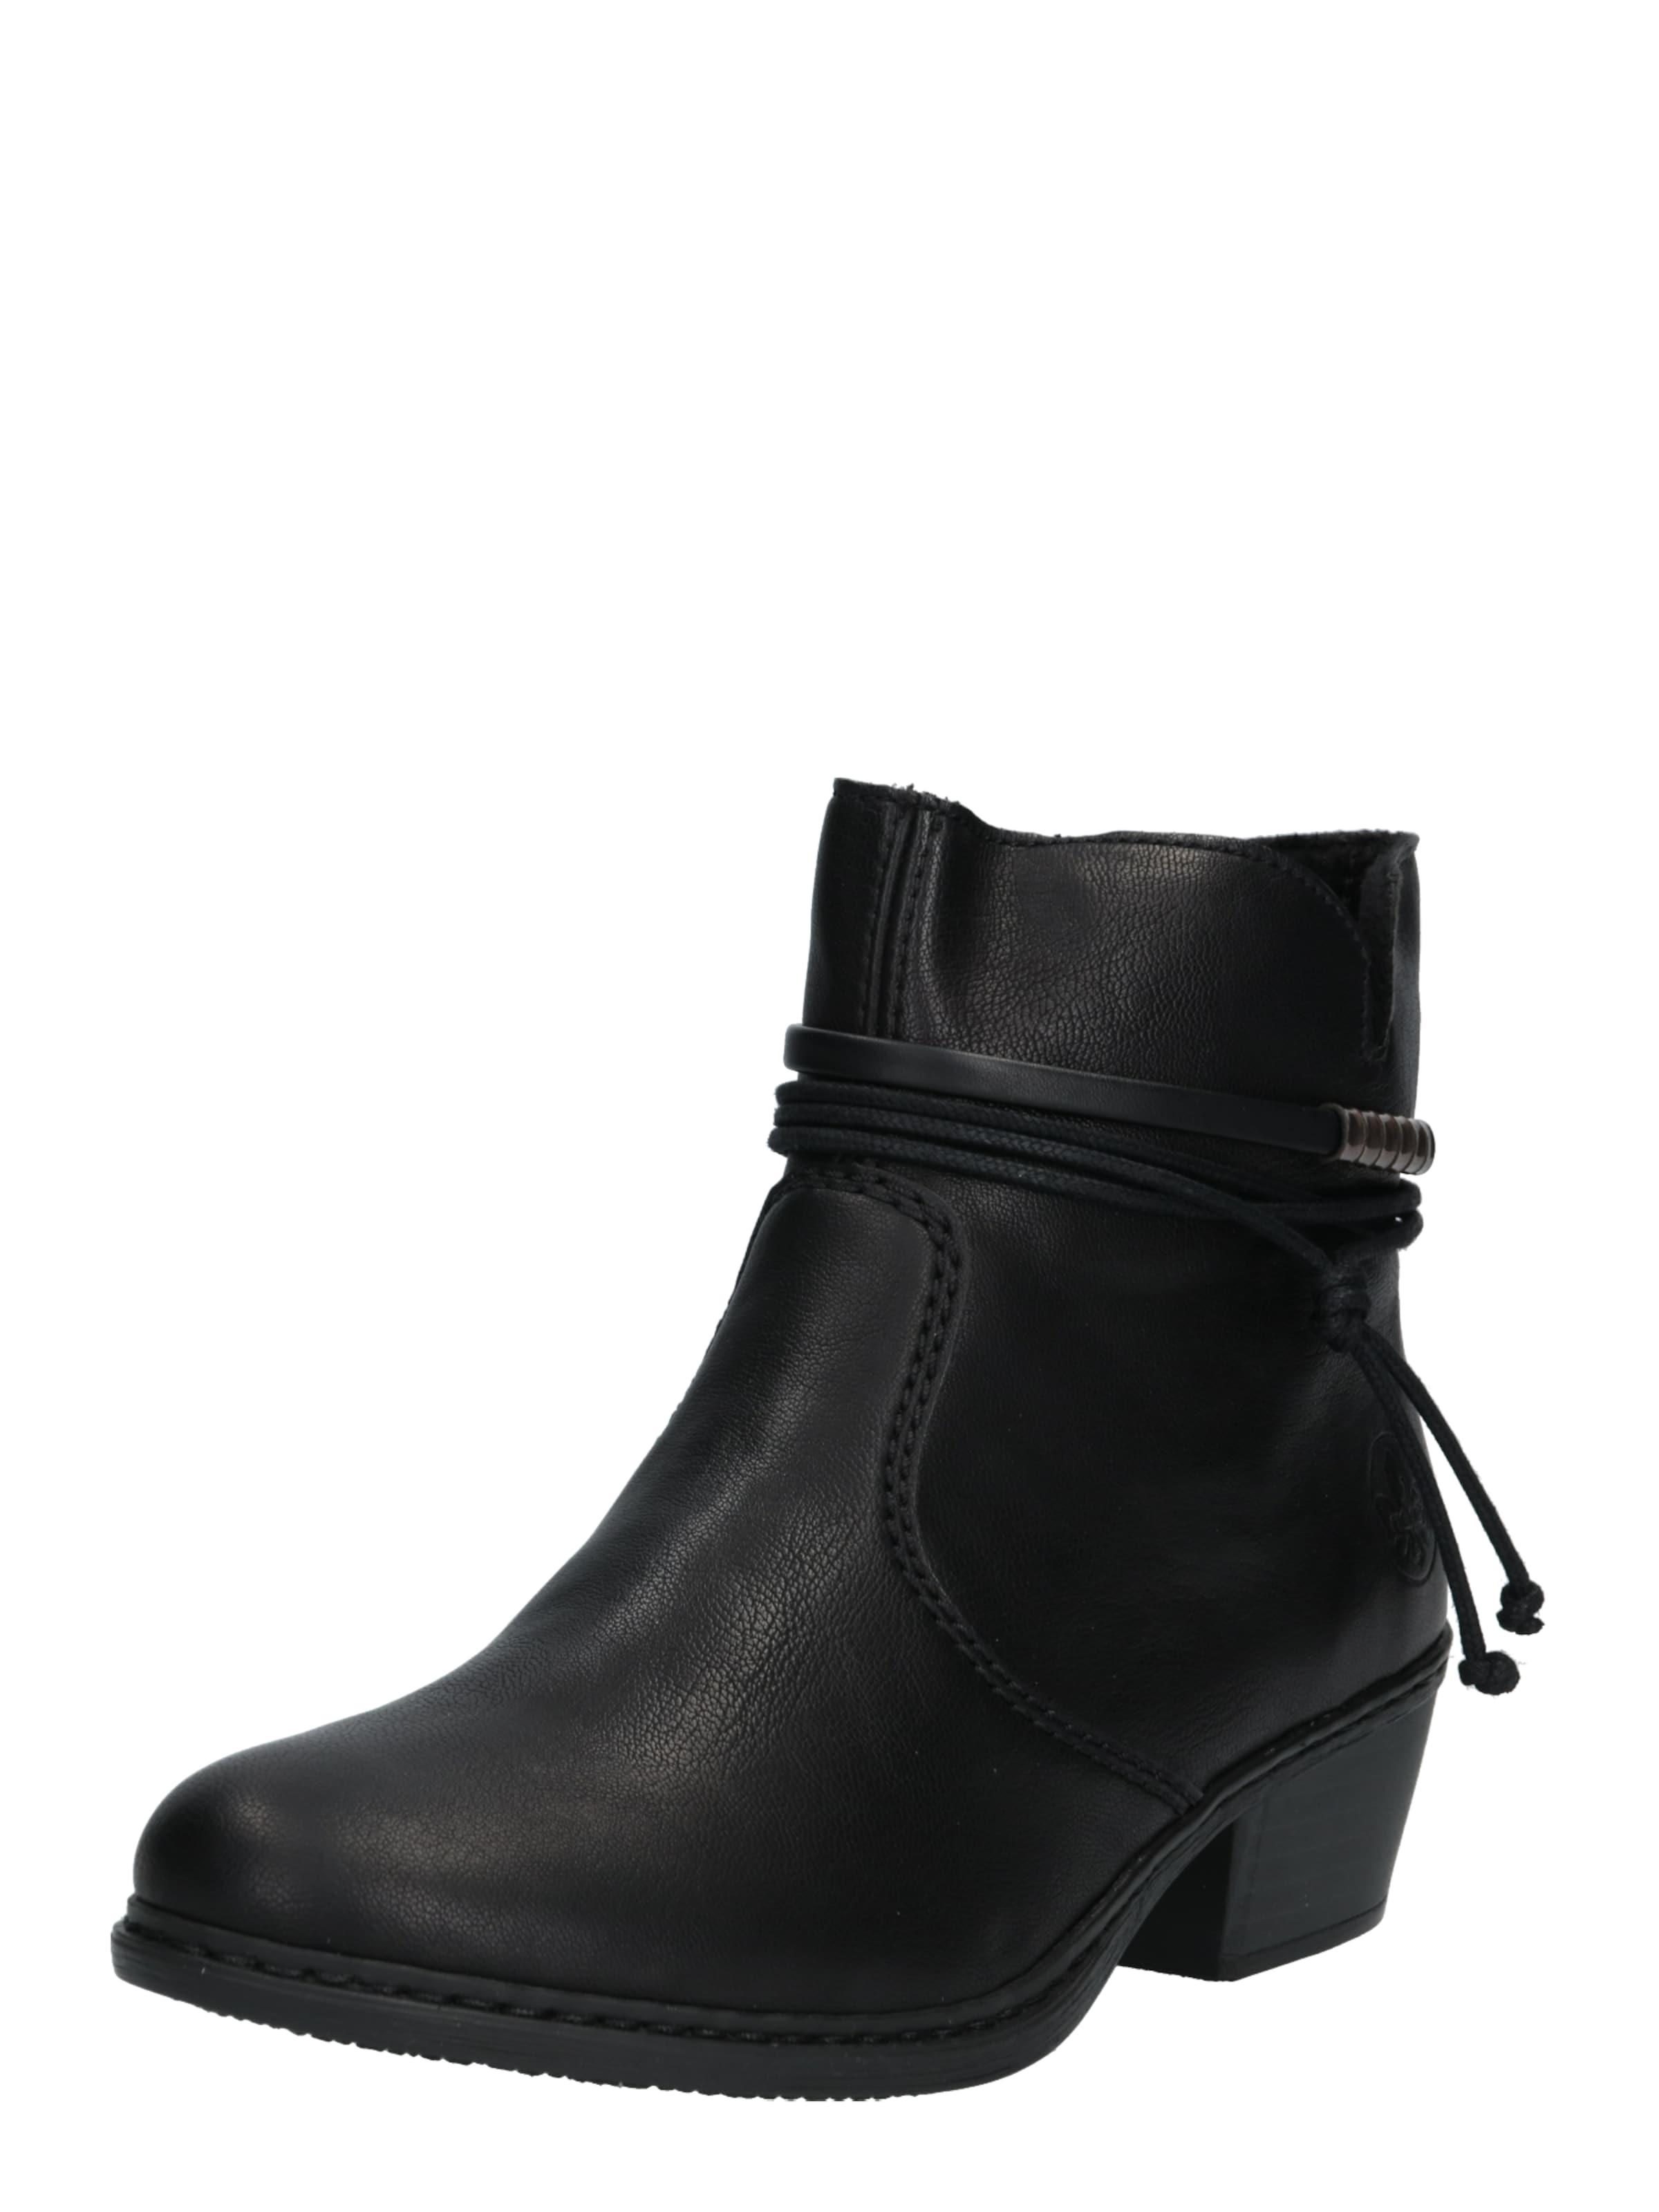 Noir En Bottines En Rieker Bottines Noir Bottines Rieker Rieker Rieker En Bottines En Noir WIYE2DH9